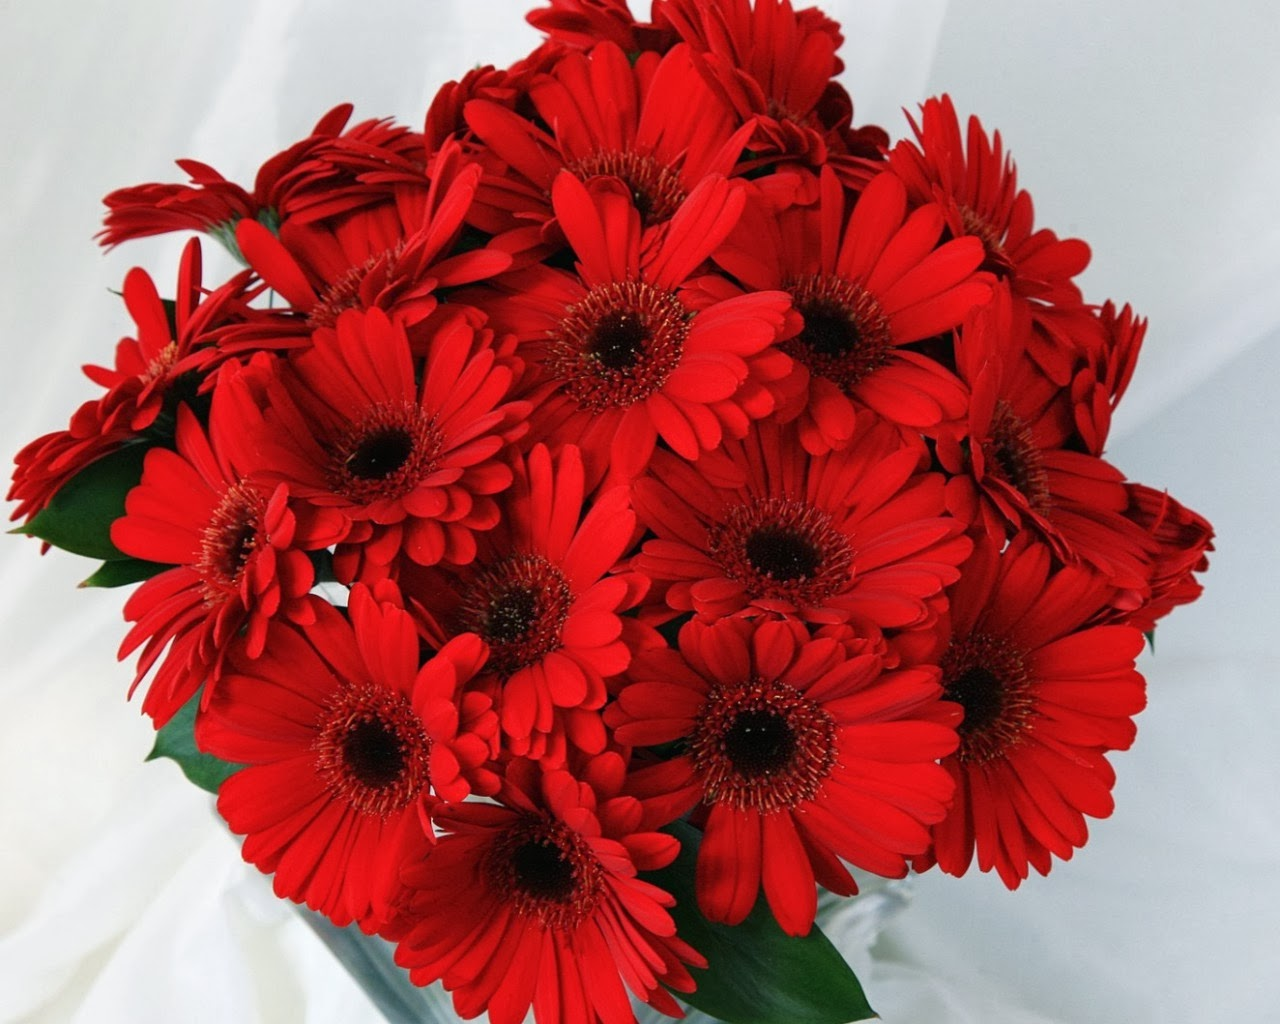 gather flowers wallpapers - photo #15